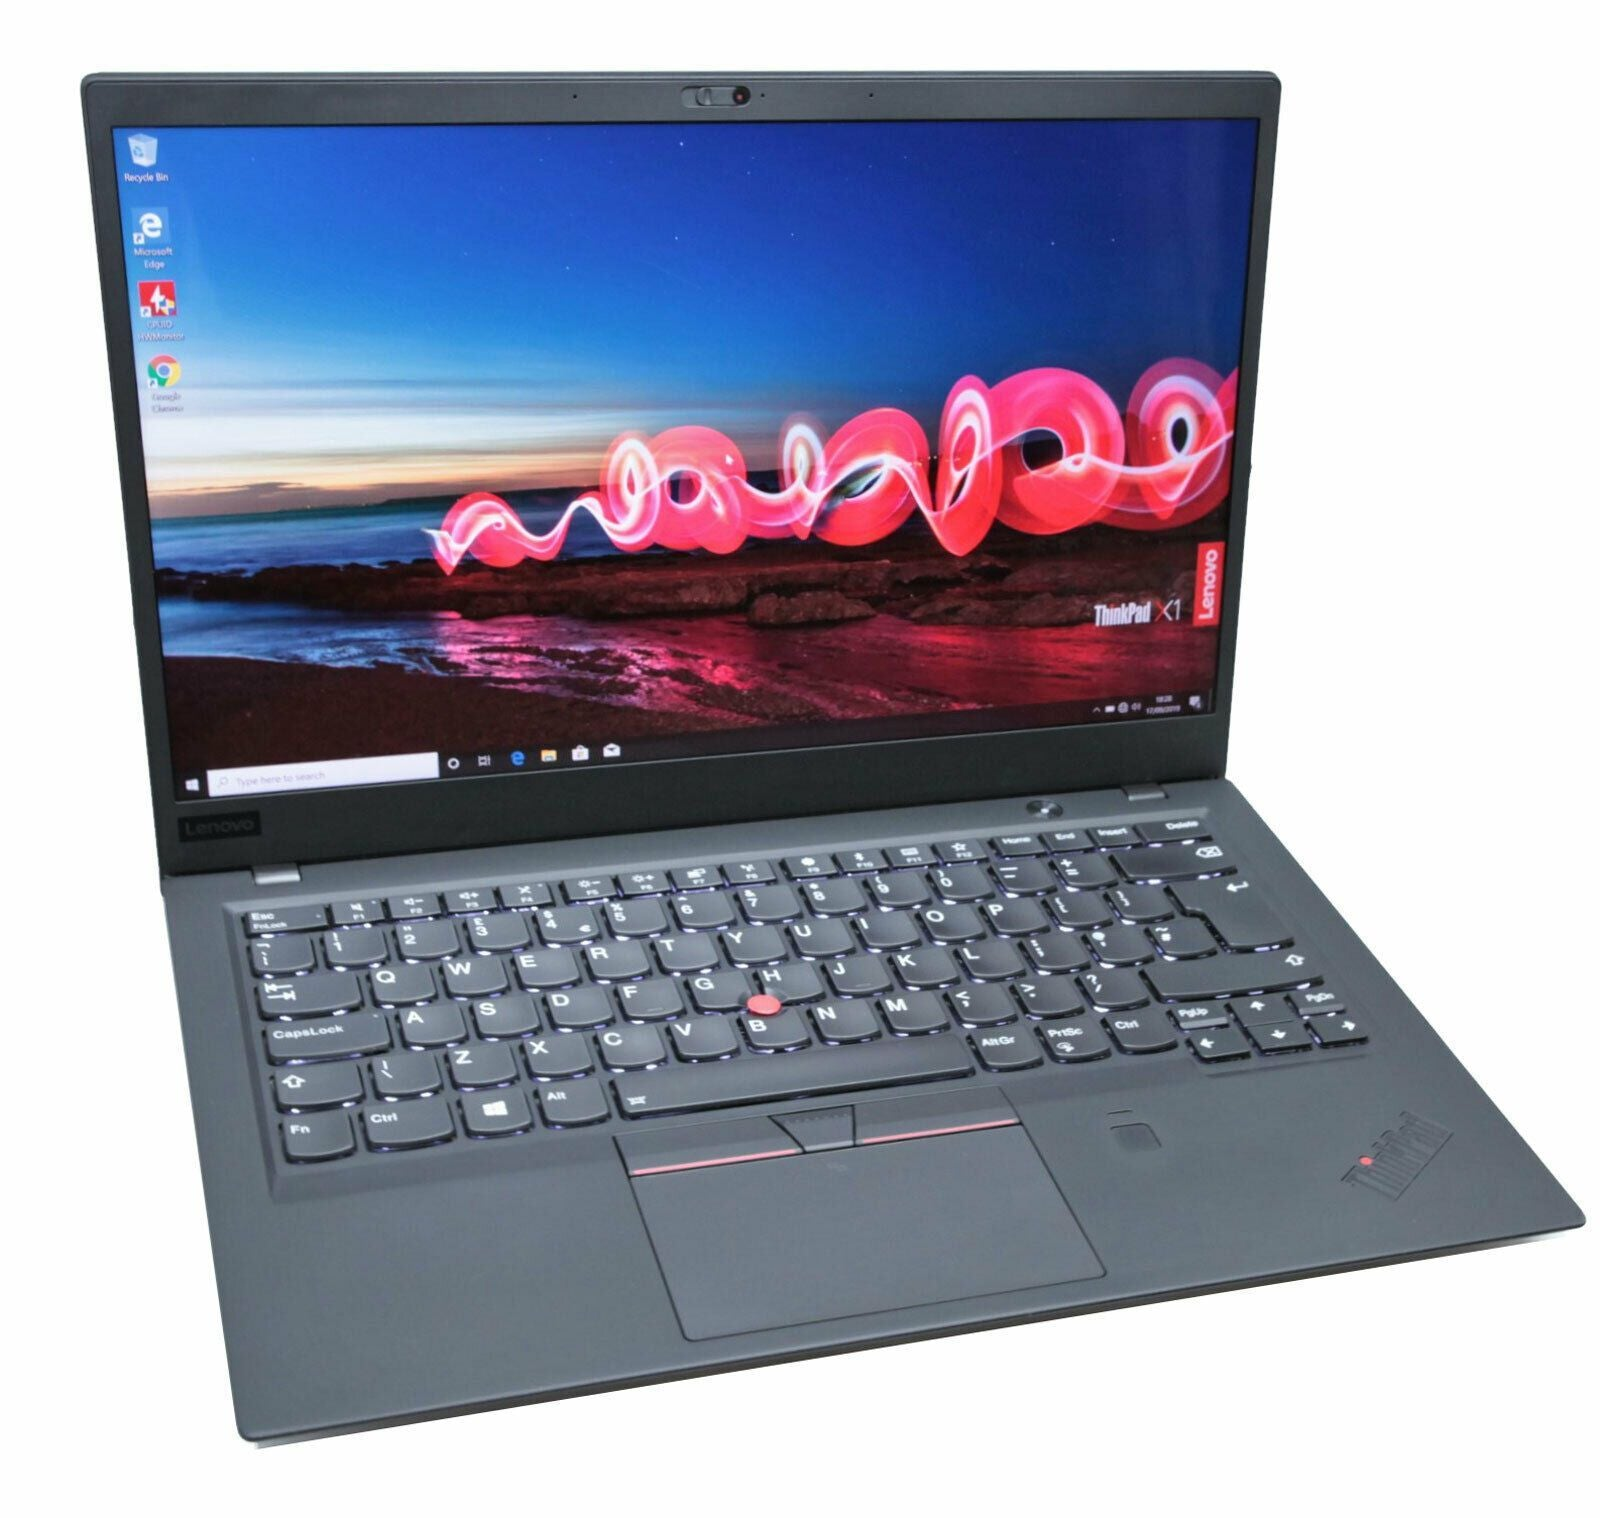 Lenovo Thinkpad X1 Carbon 6th Gen: Core i7-8550U, 512GB, HDR, LTE, Warranty - CruiseTech